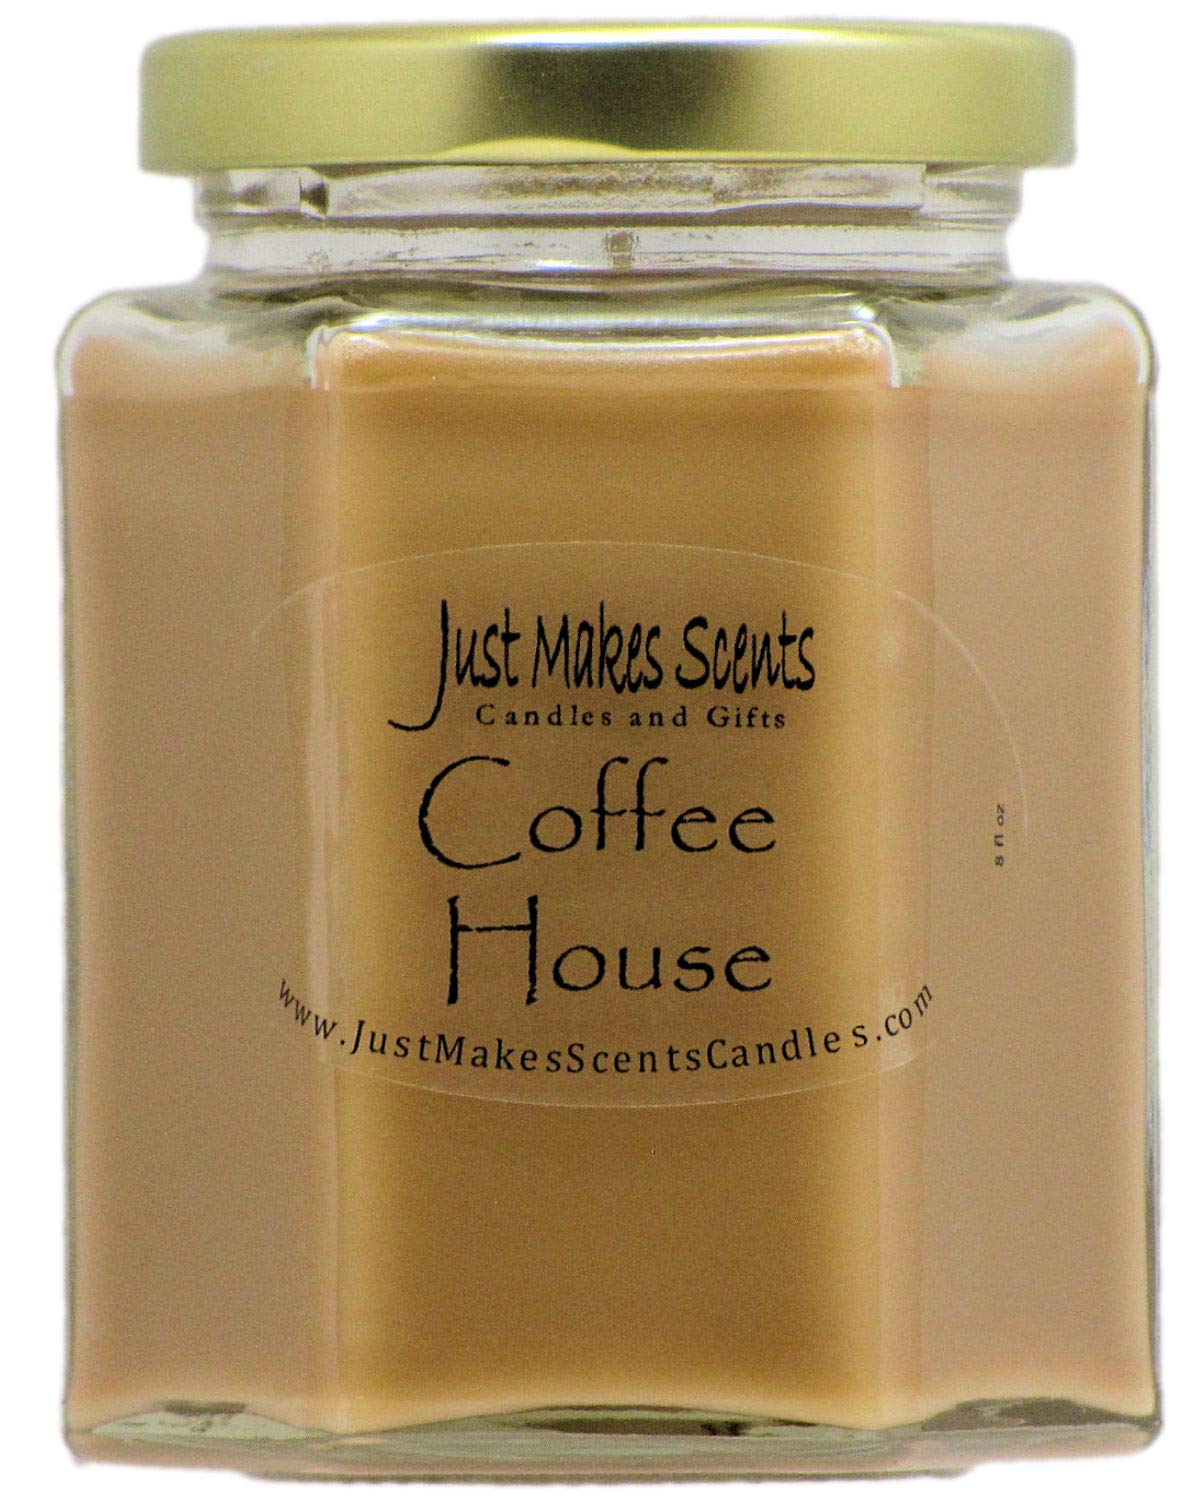 Just Makes Scents Coffee House Scented Soy Blend Candle Fresh Coffee Smell Hand Poured In The Usa Buy Online In Grenada At Grenada Desertcart Com Productid 102851656